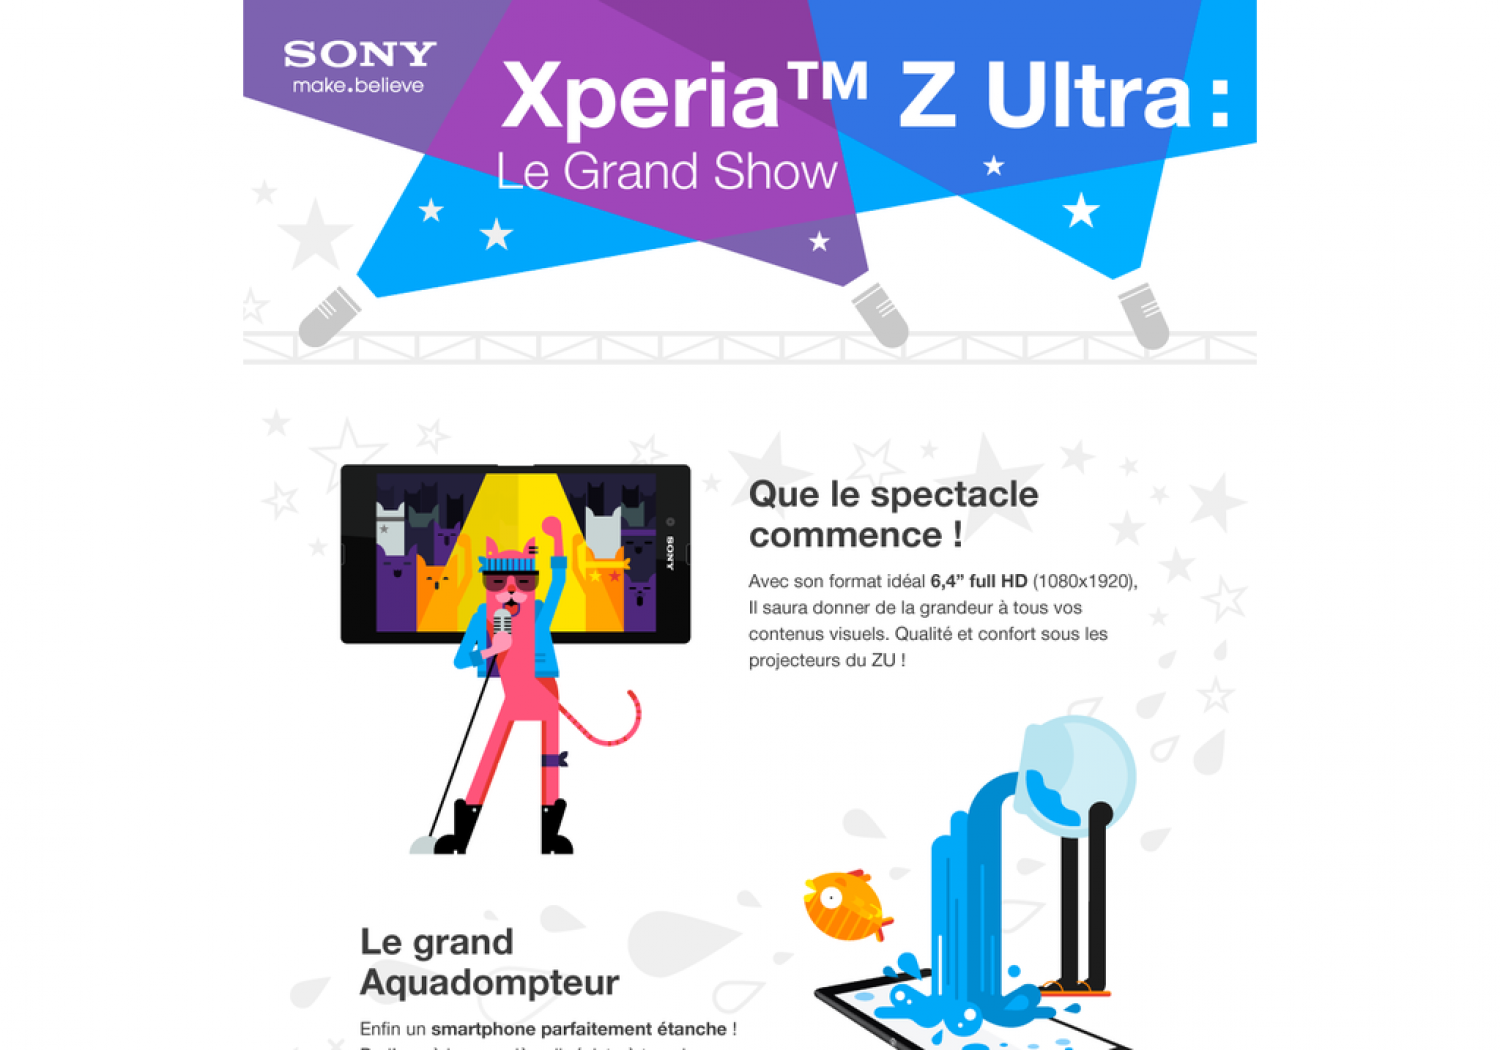 Xperia Z Ultra : Le Grand Show Infographic